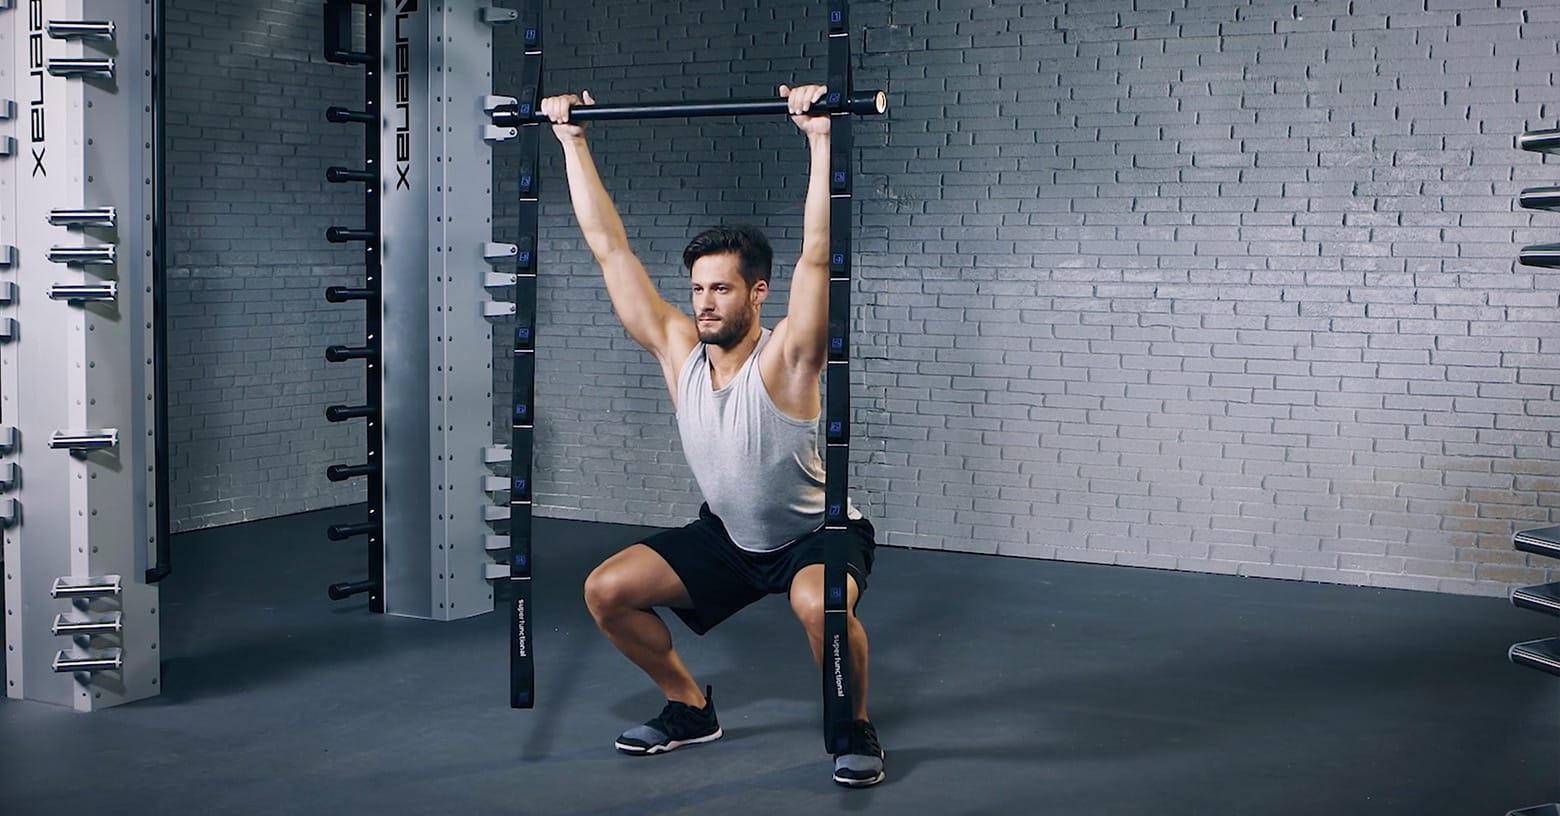 Tutorial: Overhead Squat